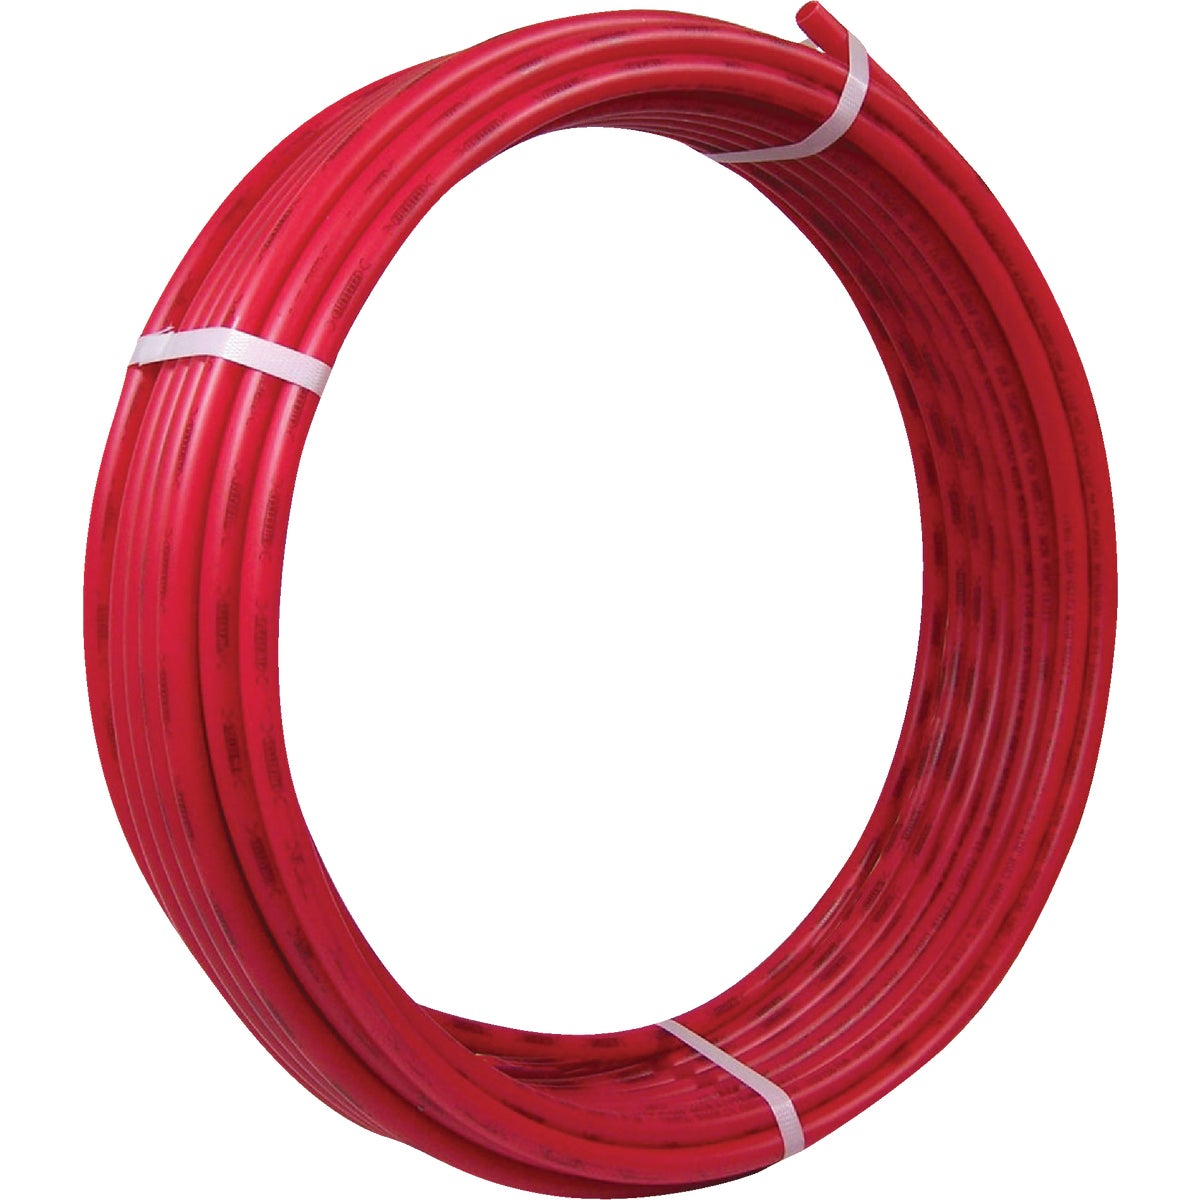 "1/2""X100' RED PEX TUBING - P-12-100R by Watts Regulator Co"